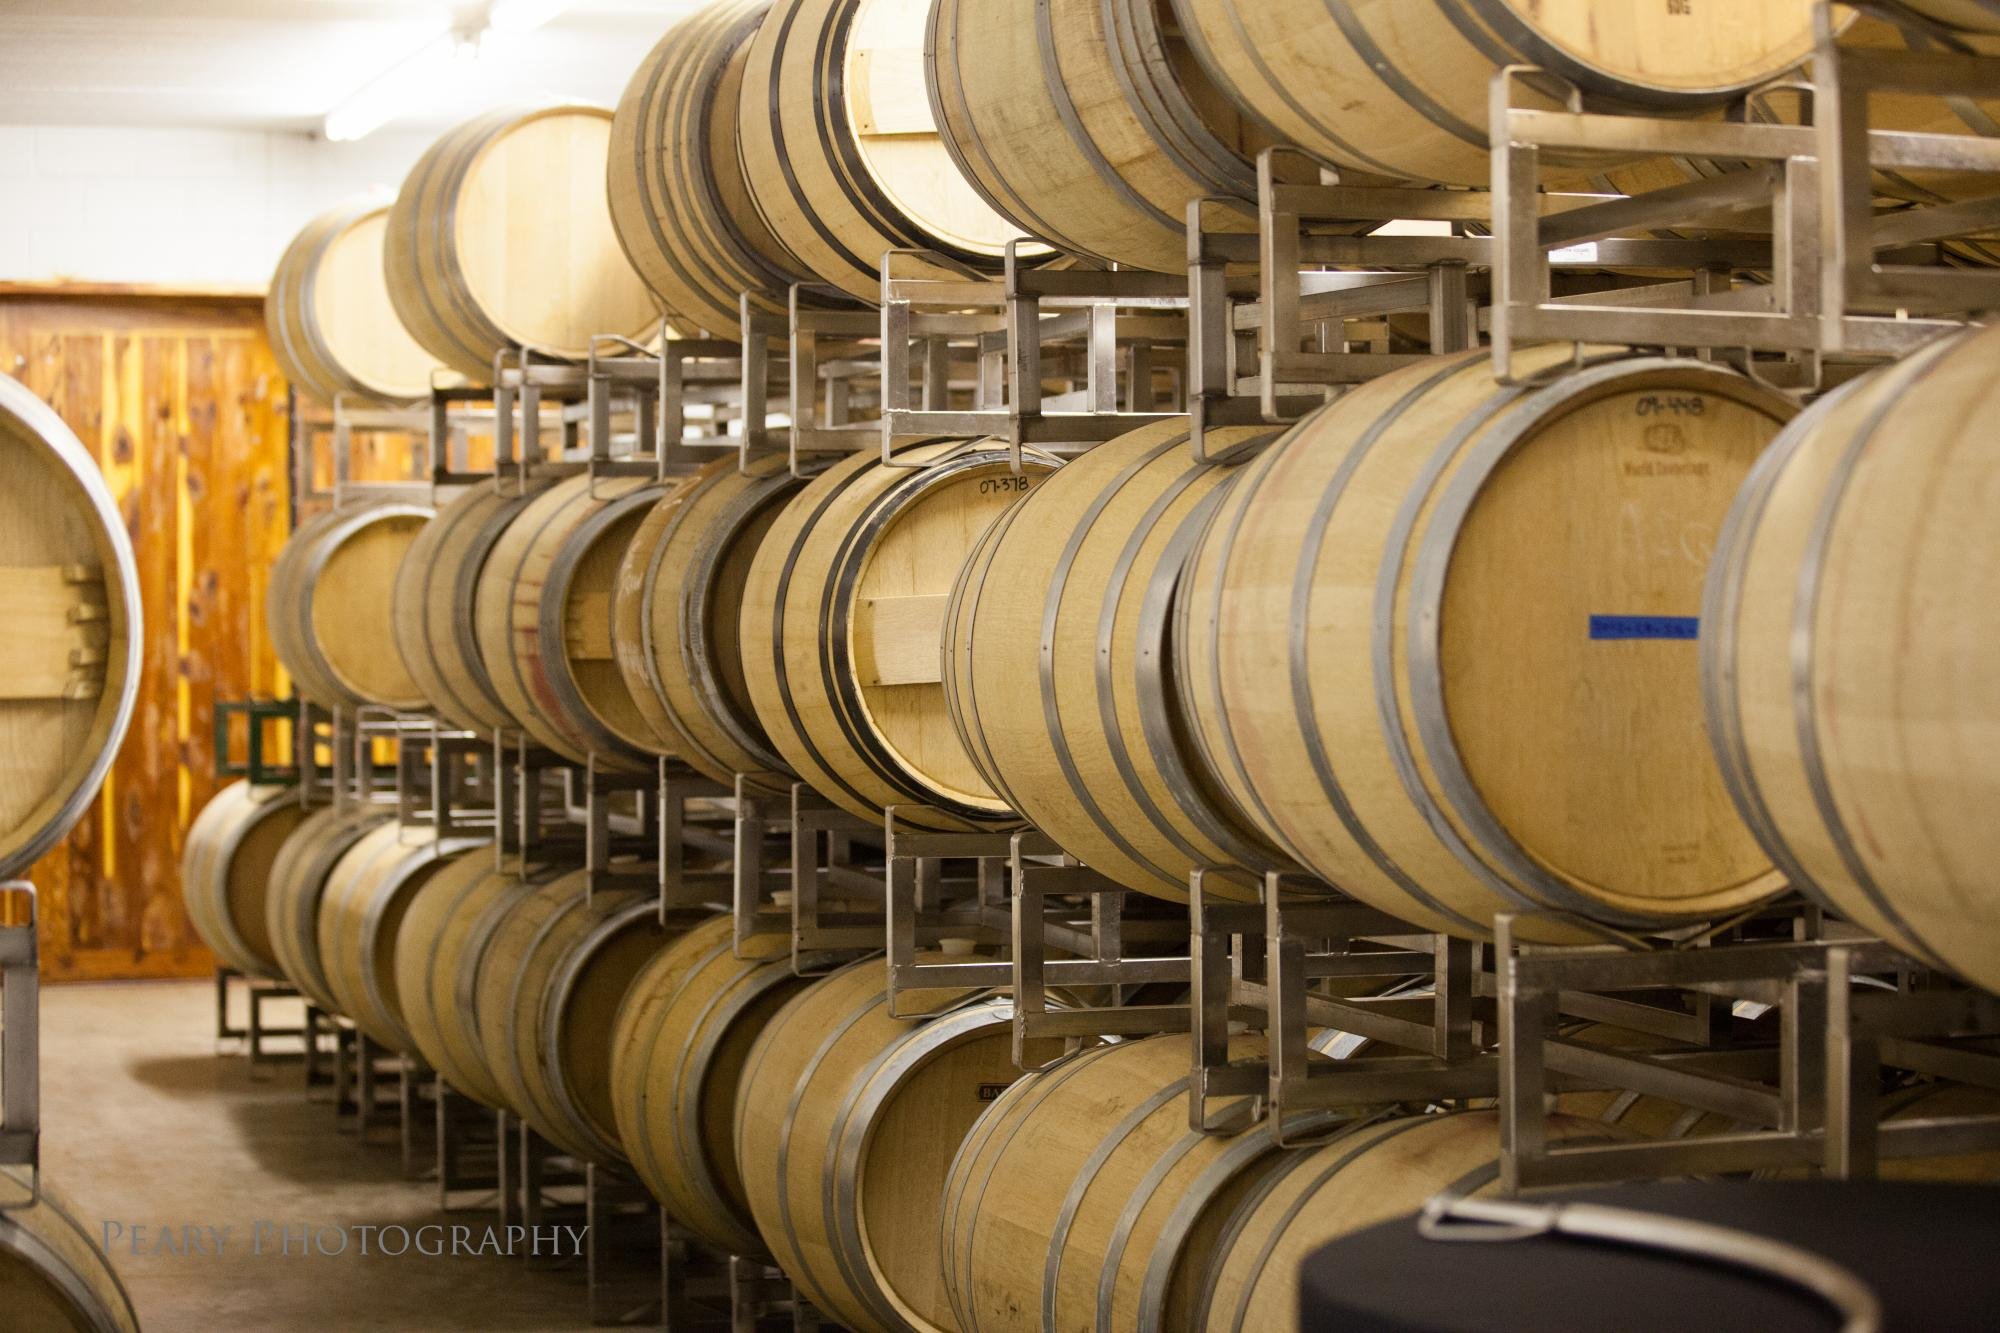 Barrel_Room_1_-_Peary_Photography.jpg